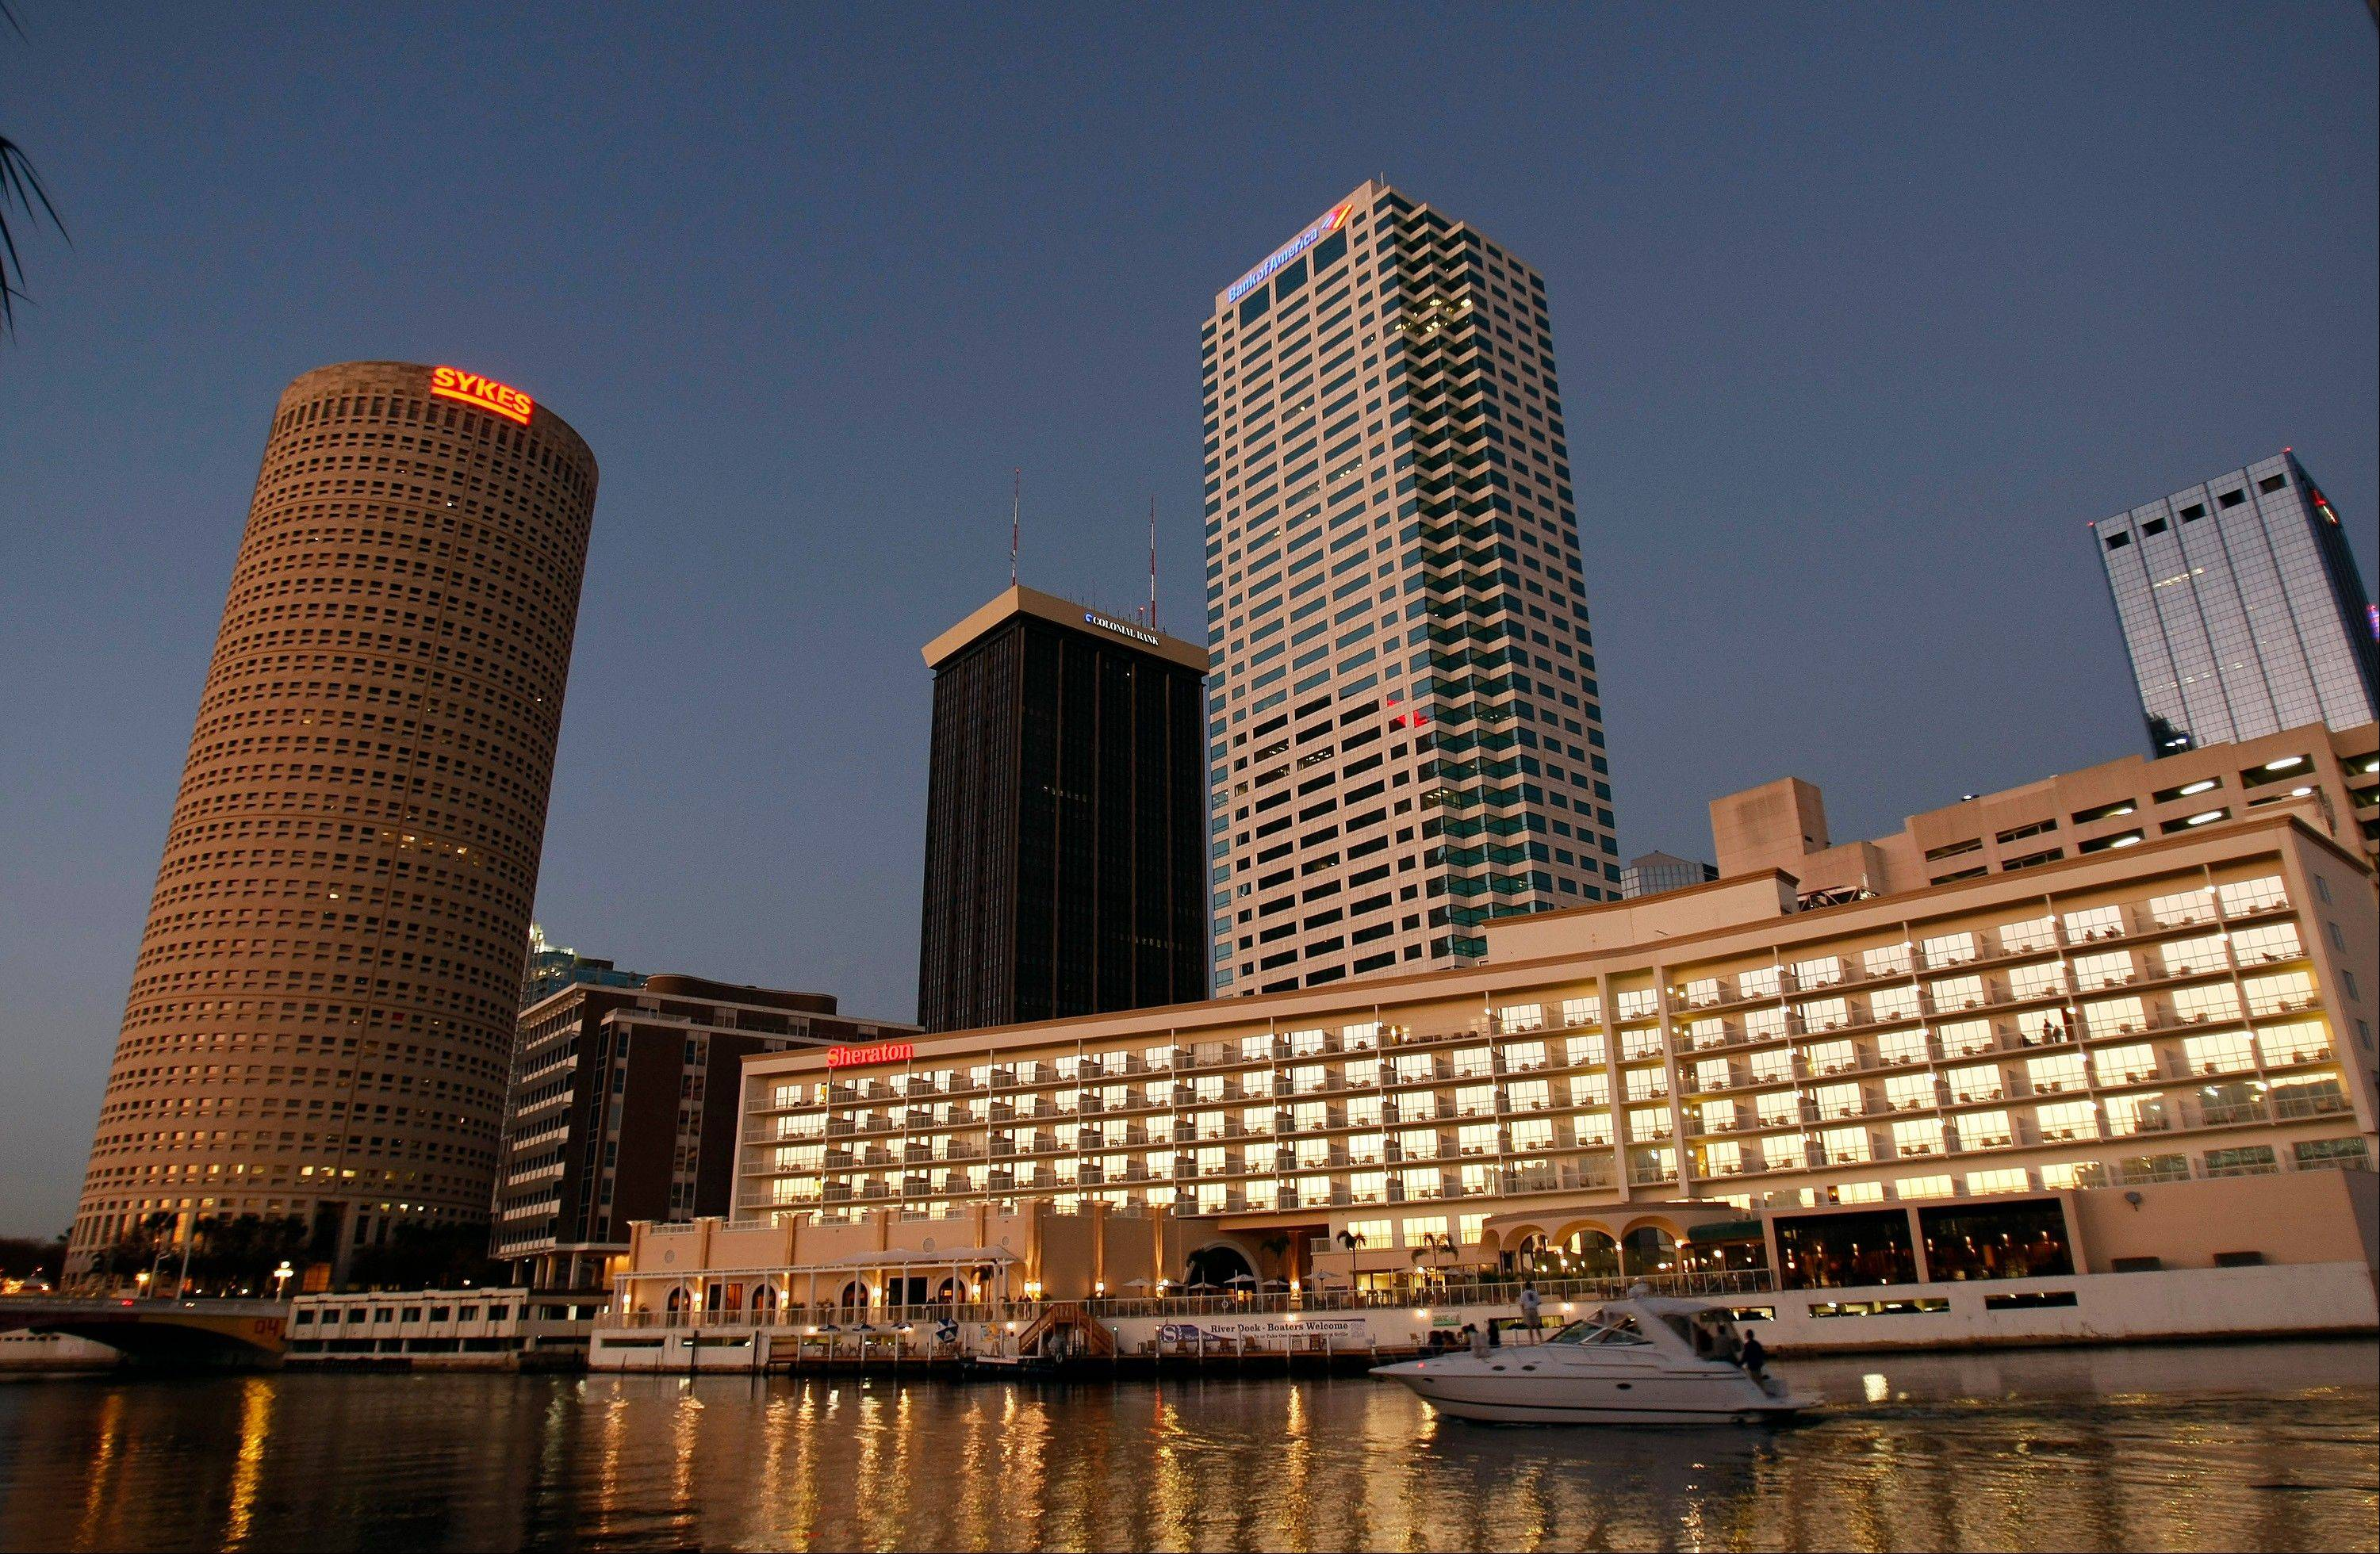 Tampa is the host city of the Republican National Convention Aug. 27-30.